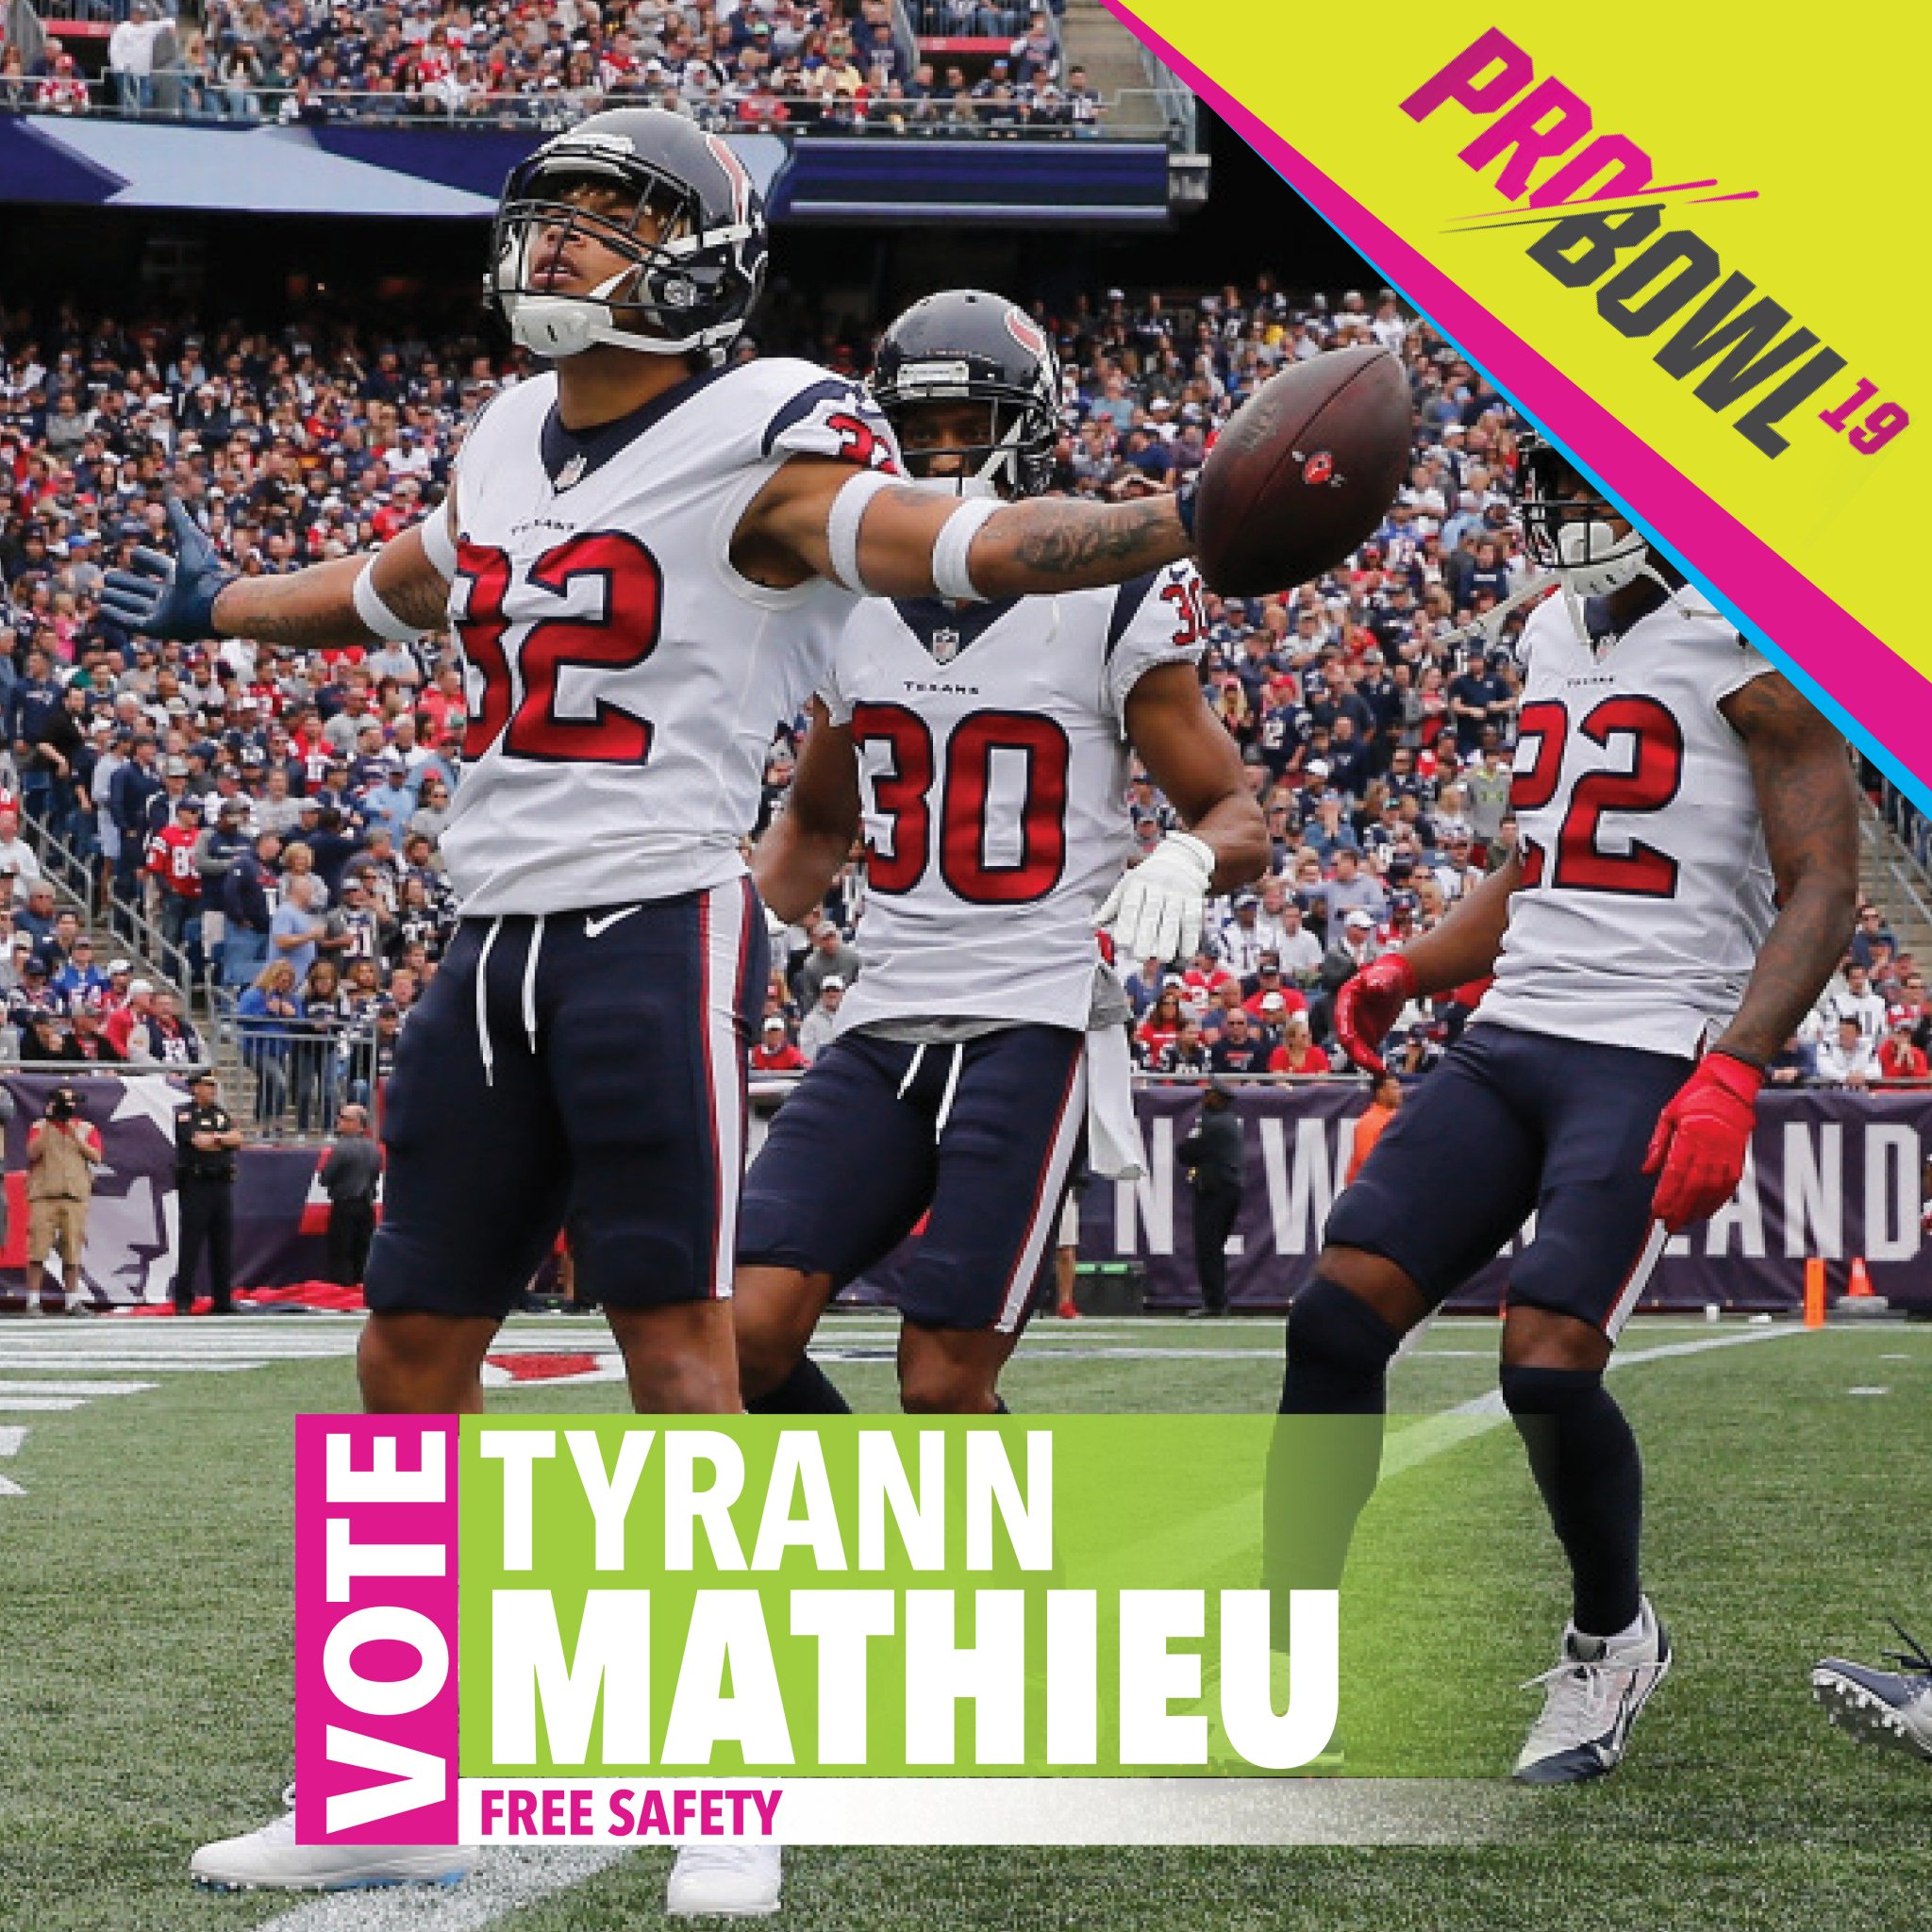 RT to vote TYRANN MATHIEU !! #ProBowlVote https://t.co/tJEugIzt1P